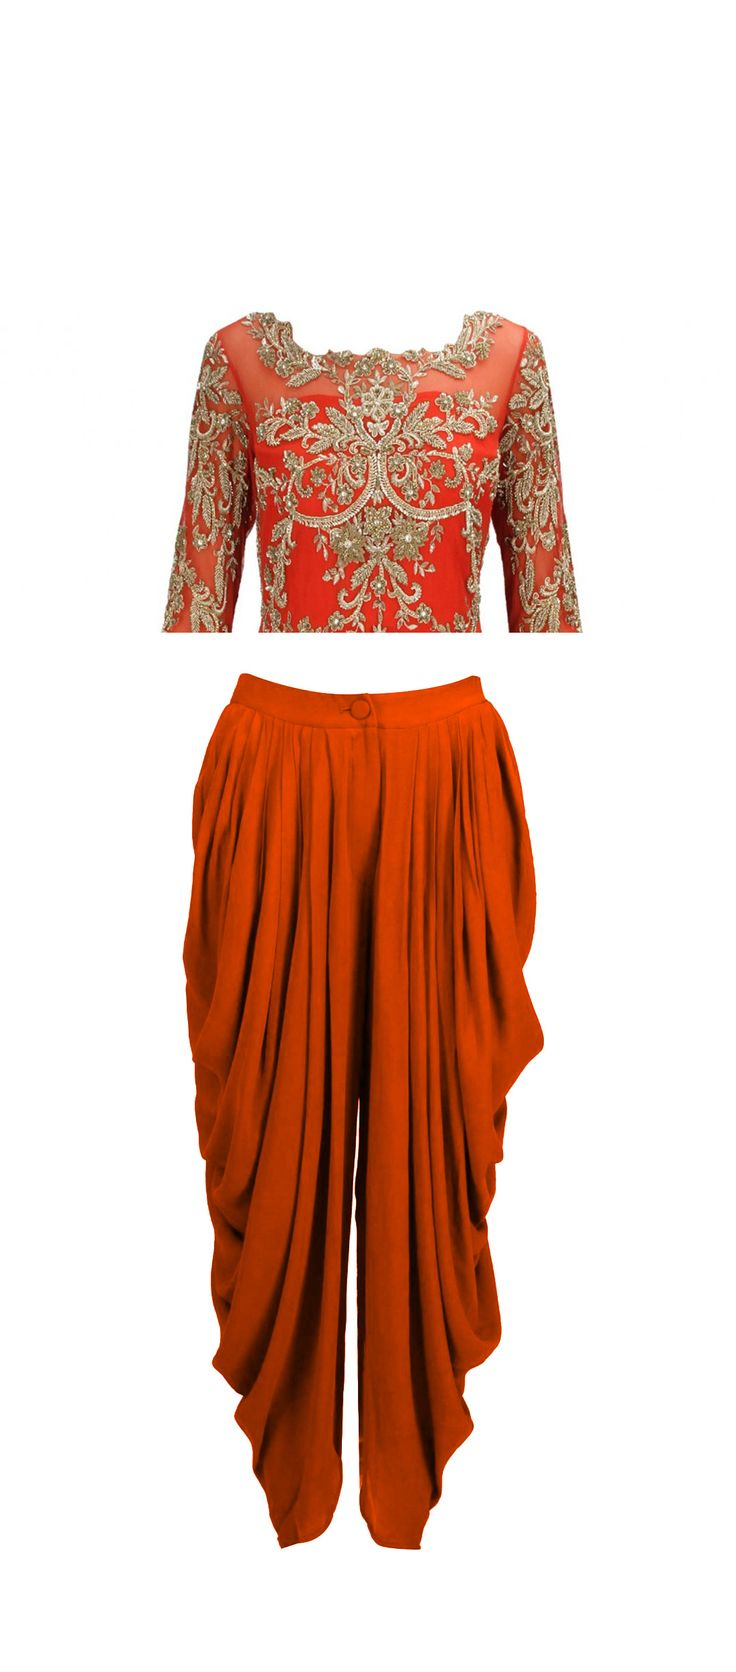 love this color combo, orange and silver. Perhaps a sari version?